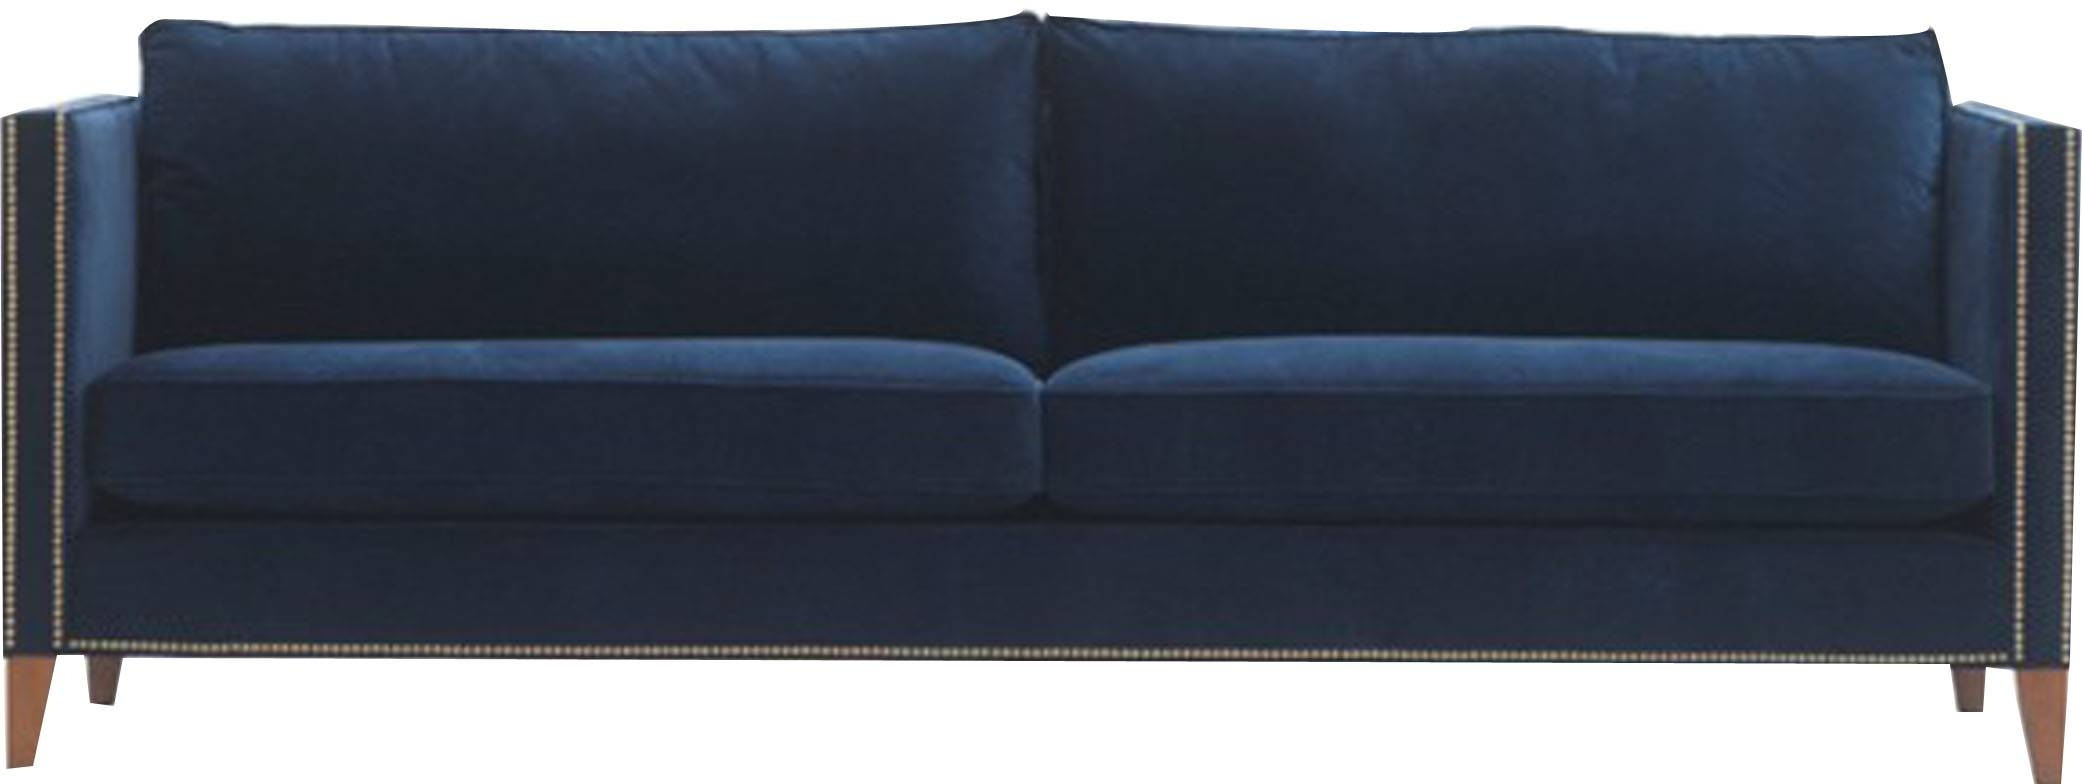 Blue Sofas For Your Home To Look Stylish – Designinyou/decor pertaining to Blue Sofas (Image 8 of 15)